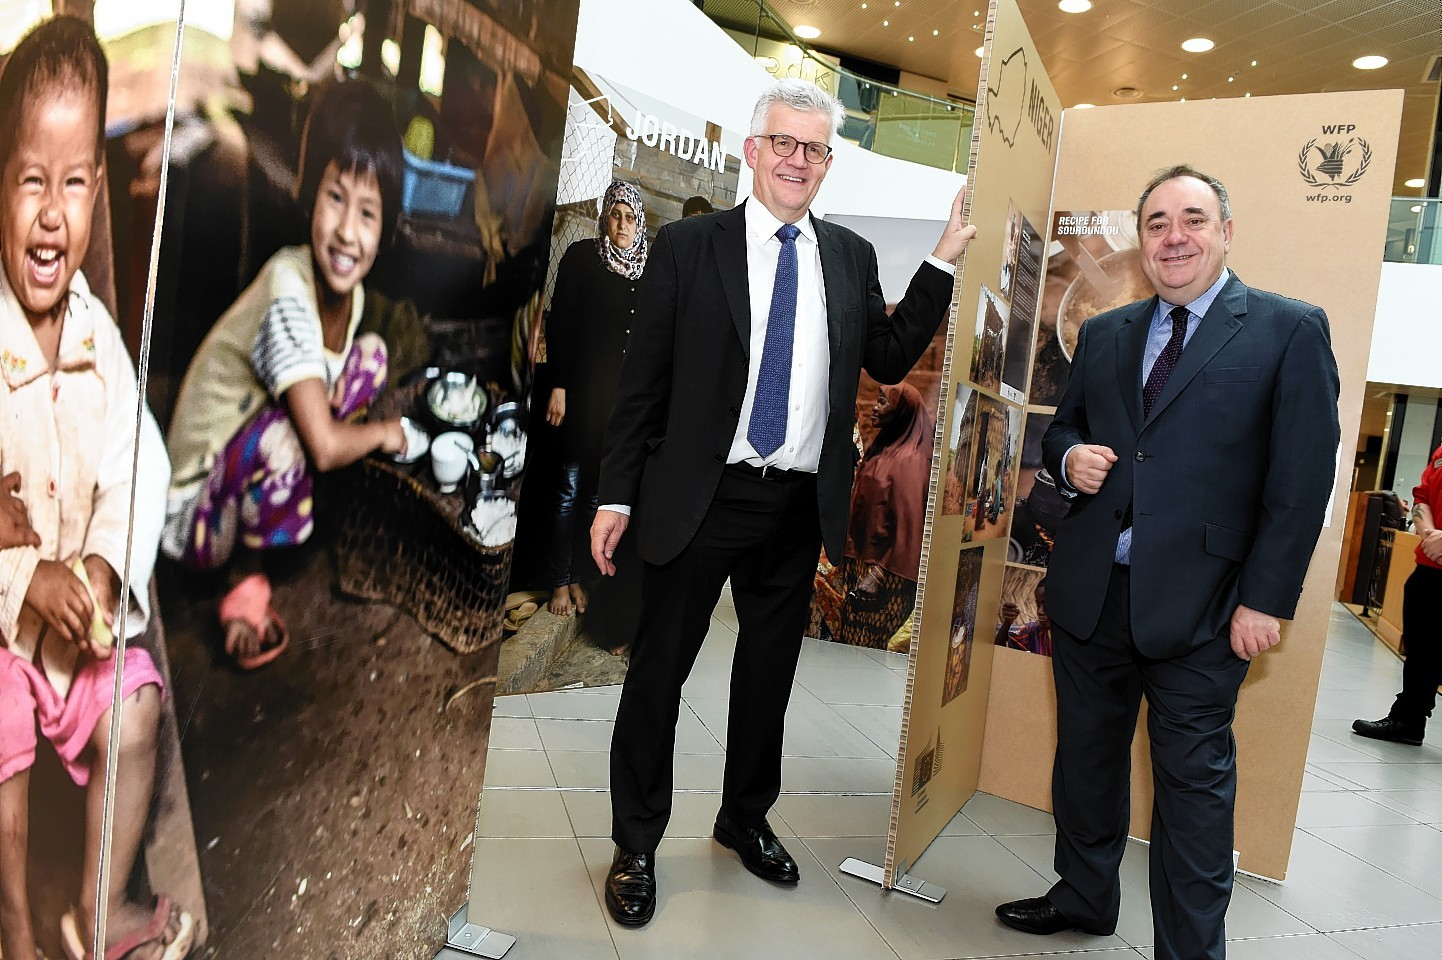 Graham Blythe, Head of the Office of the European Commission in Scotland and Alex Salmond MP at The Family Meal – What Brings Us Together? photo exhibition held at The Bon Accord shopping centre, Aberdeen.